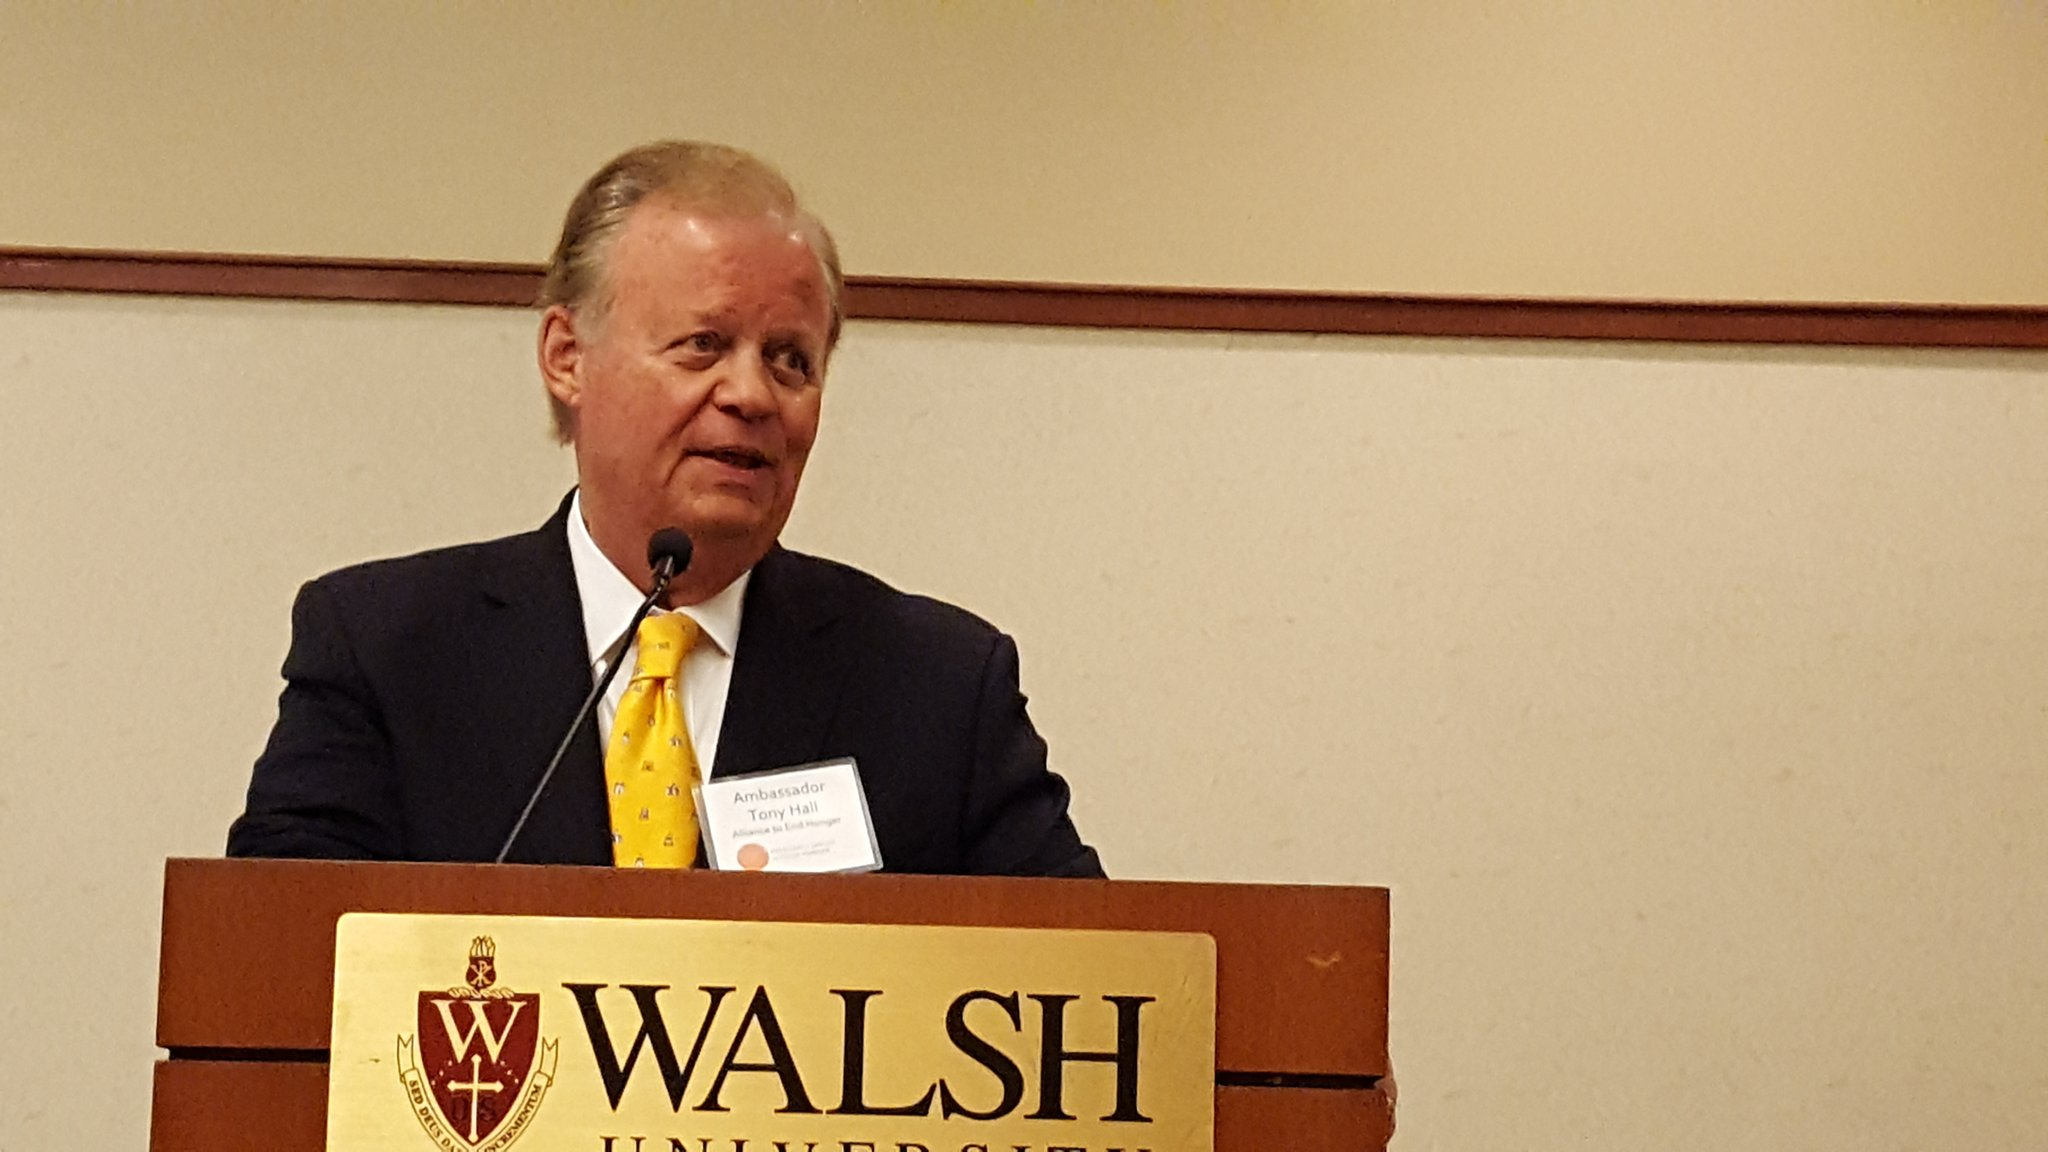 Tony Hall inspires hunger fighters #toendhunger at Walsh U #summitsquared https://t.co/WIhsBkoVWt